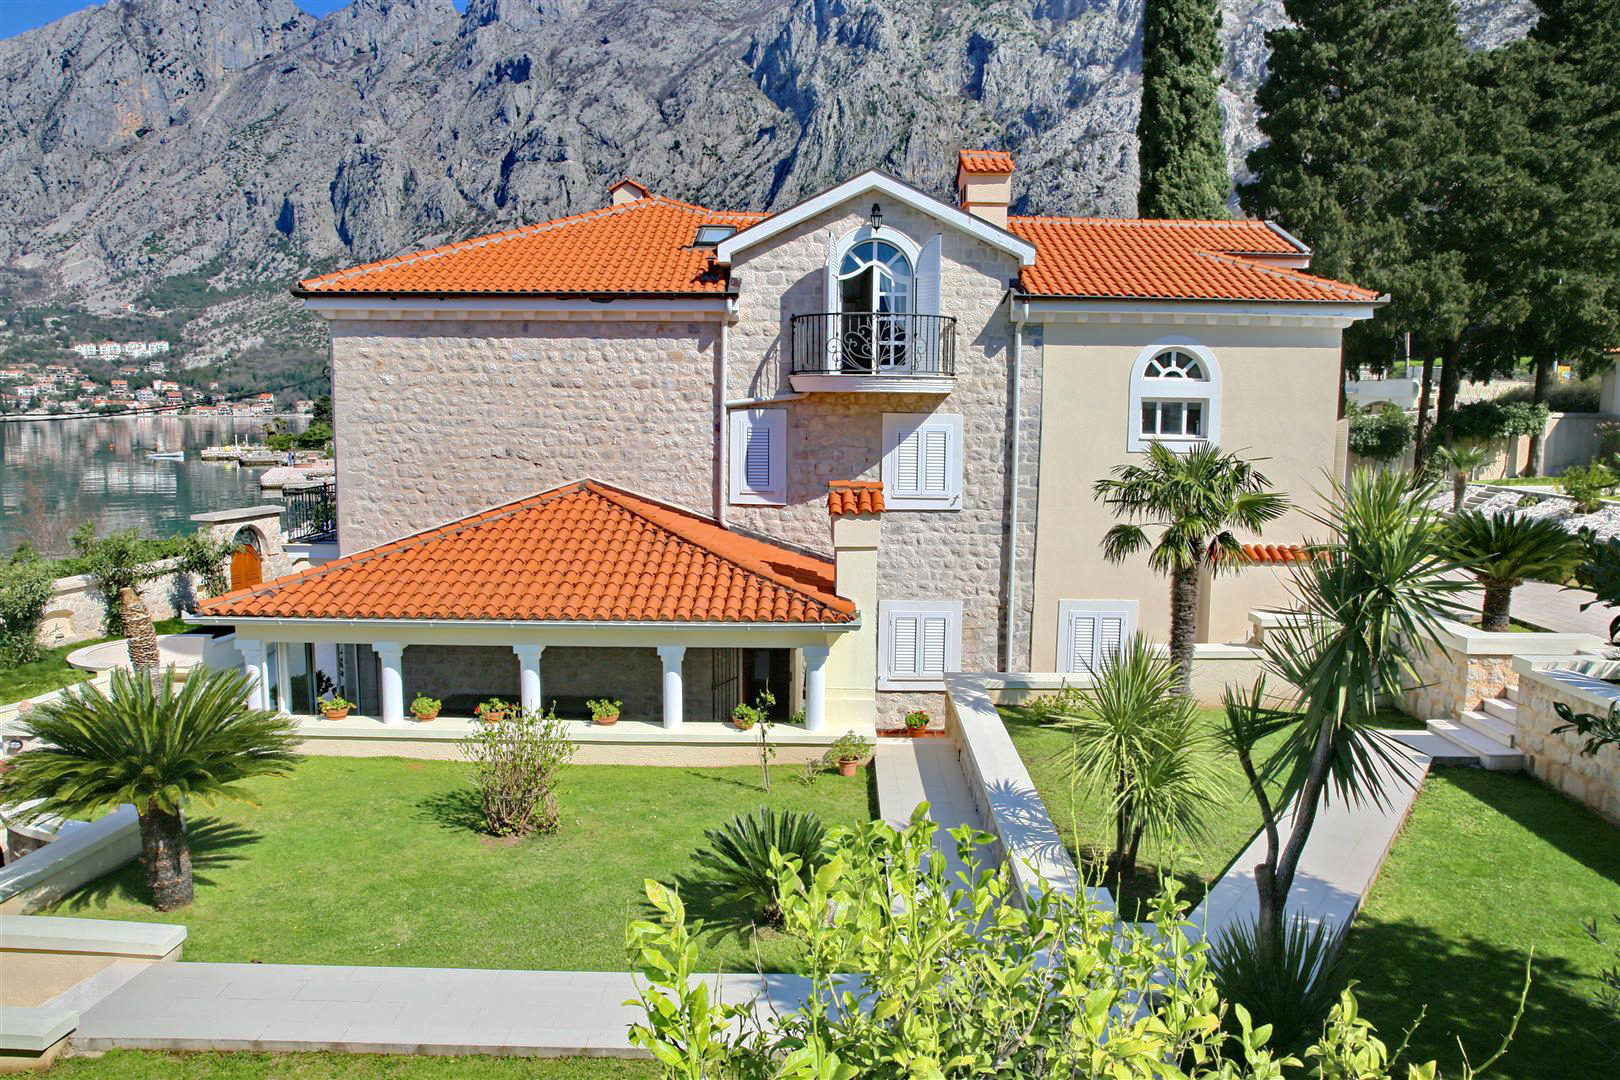 Kotor, Ljuta – authentic waterfront villa, on the land plot of 2108m2